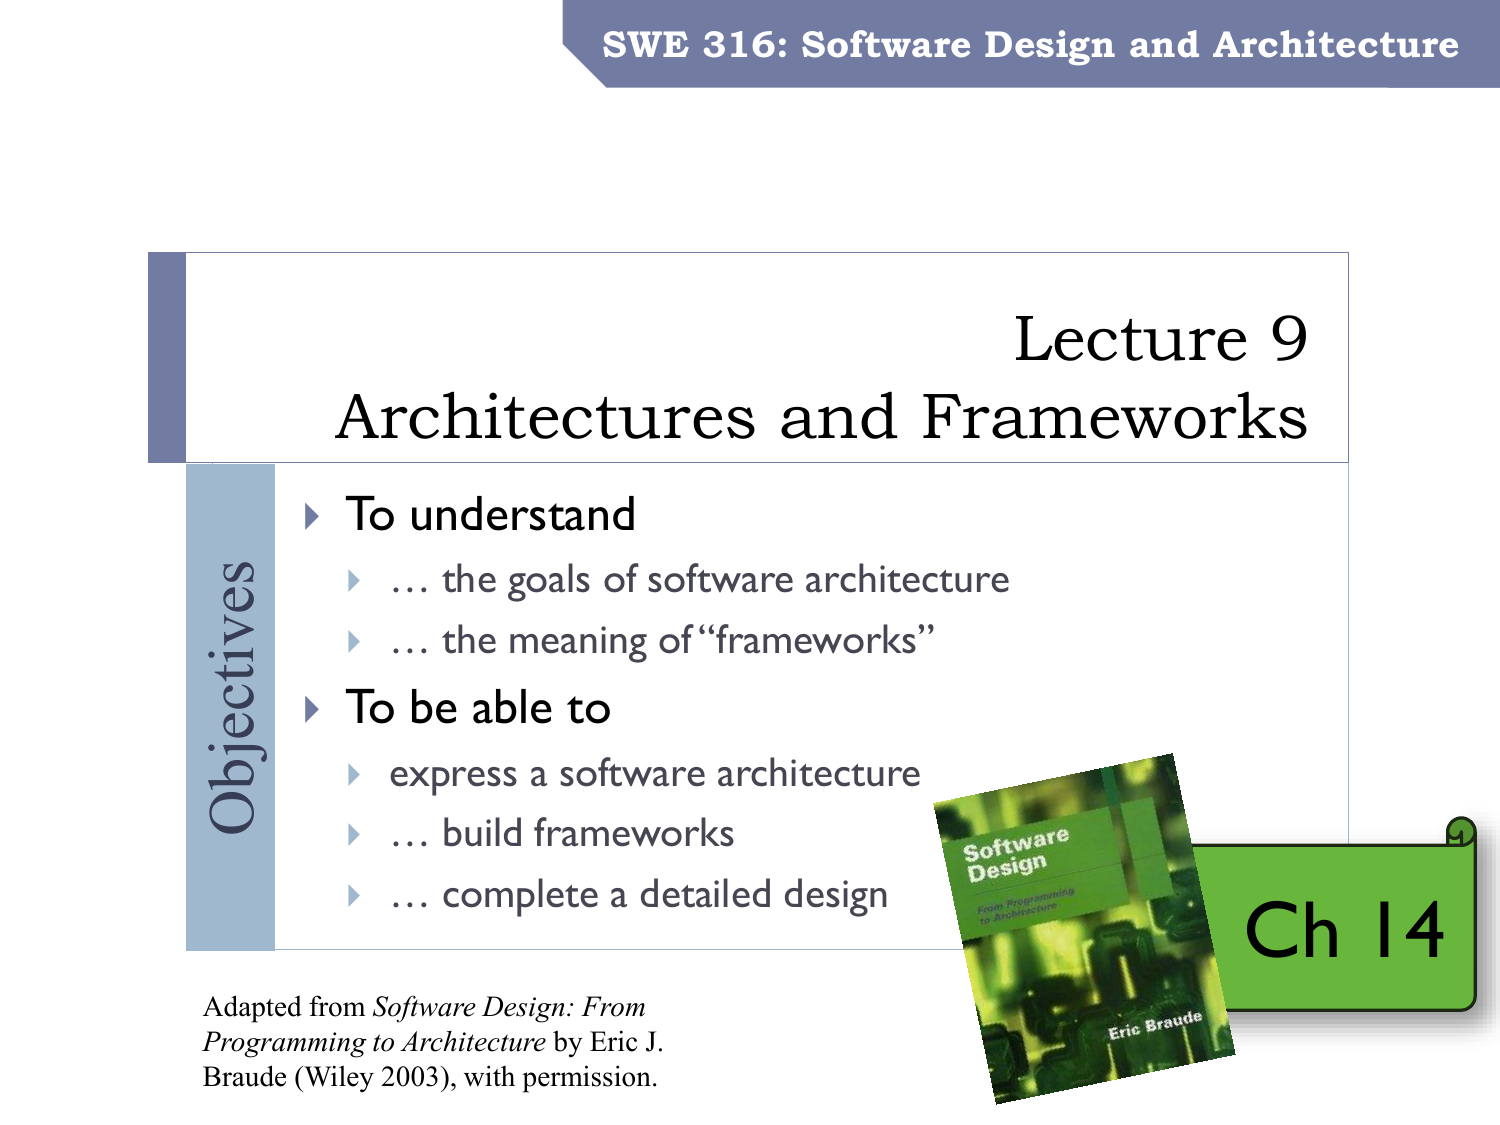 Swe 316 Software Design And Architecture